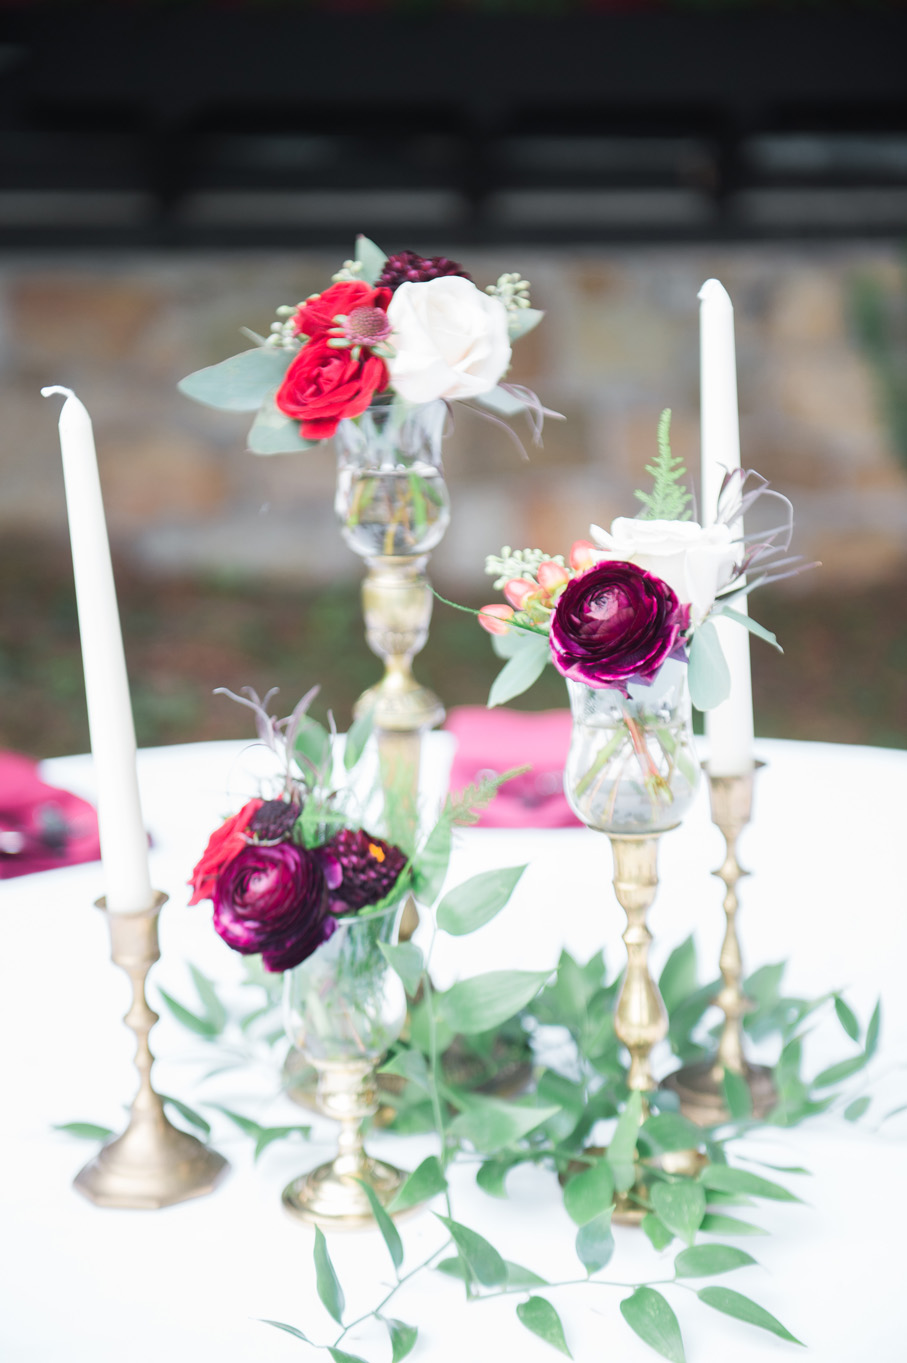 wedding centerpieces. deep creek Maryland. photography by Erin Borzellino